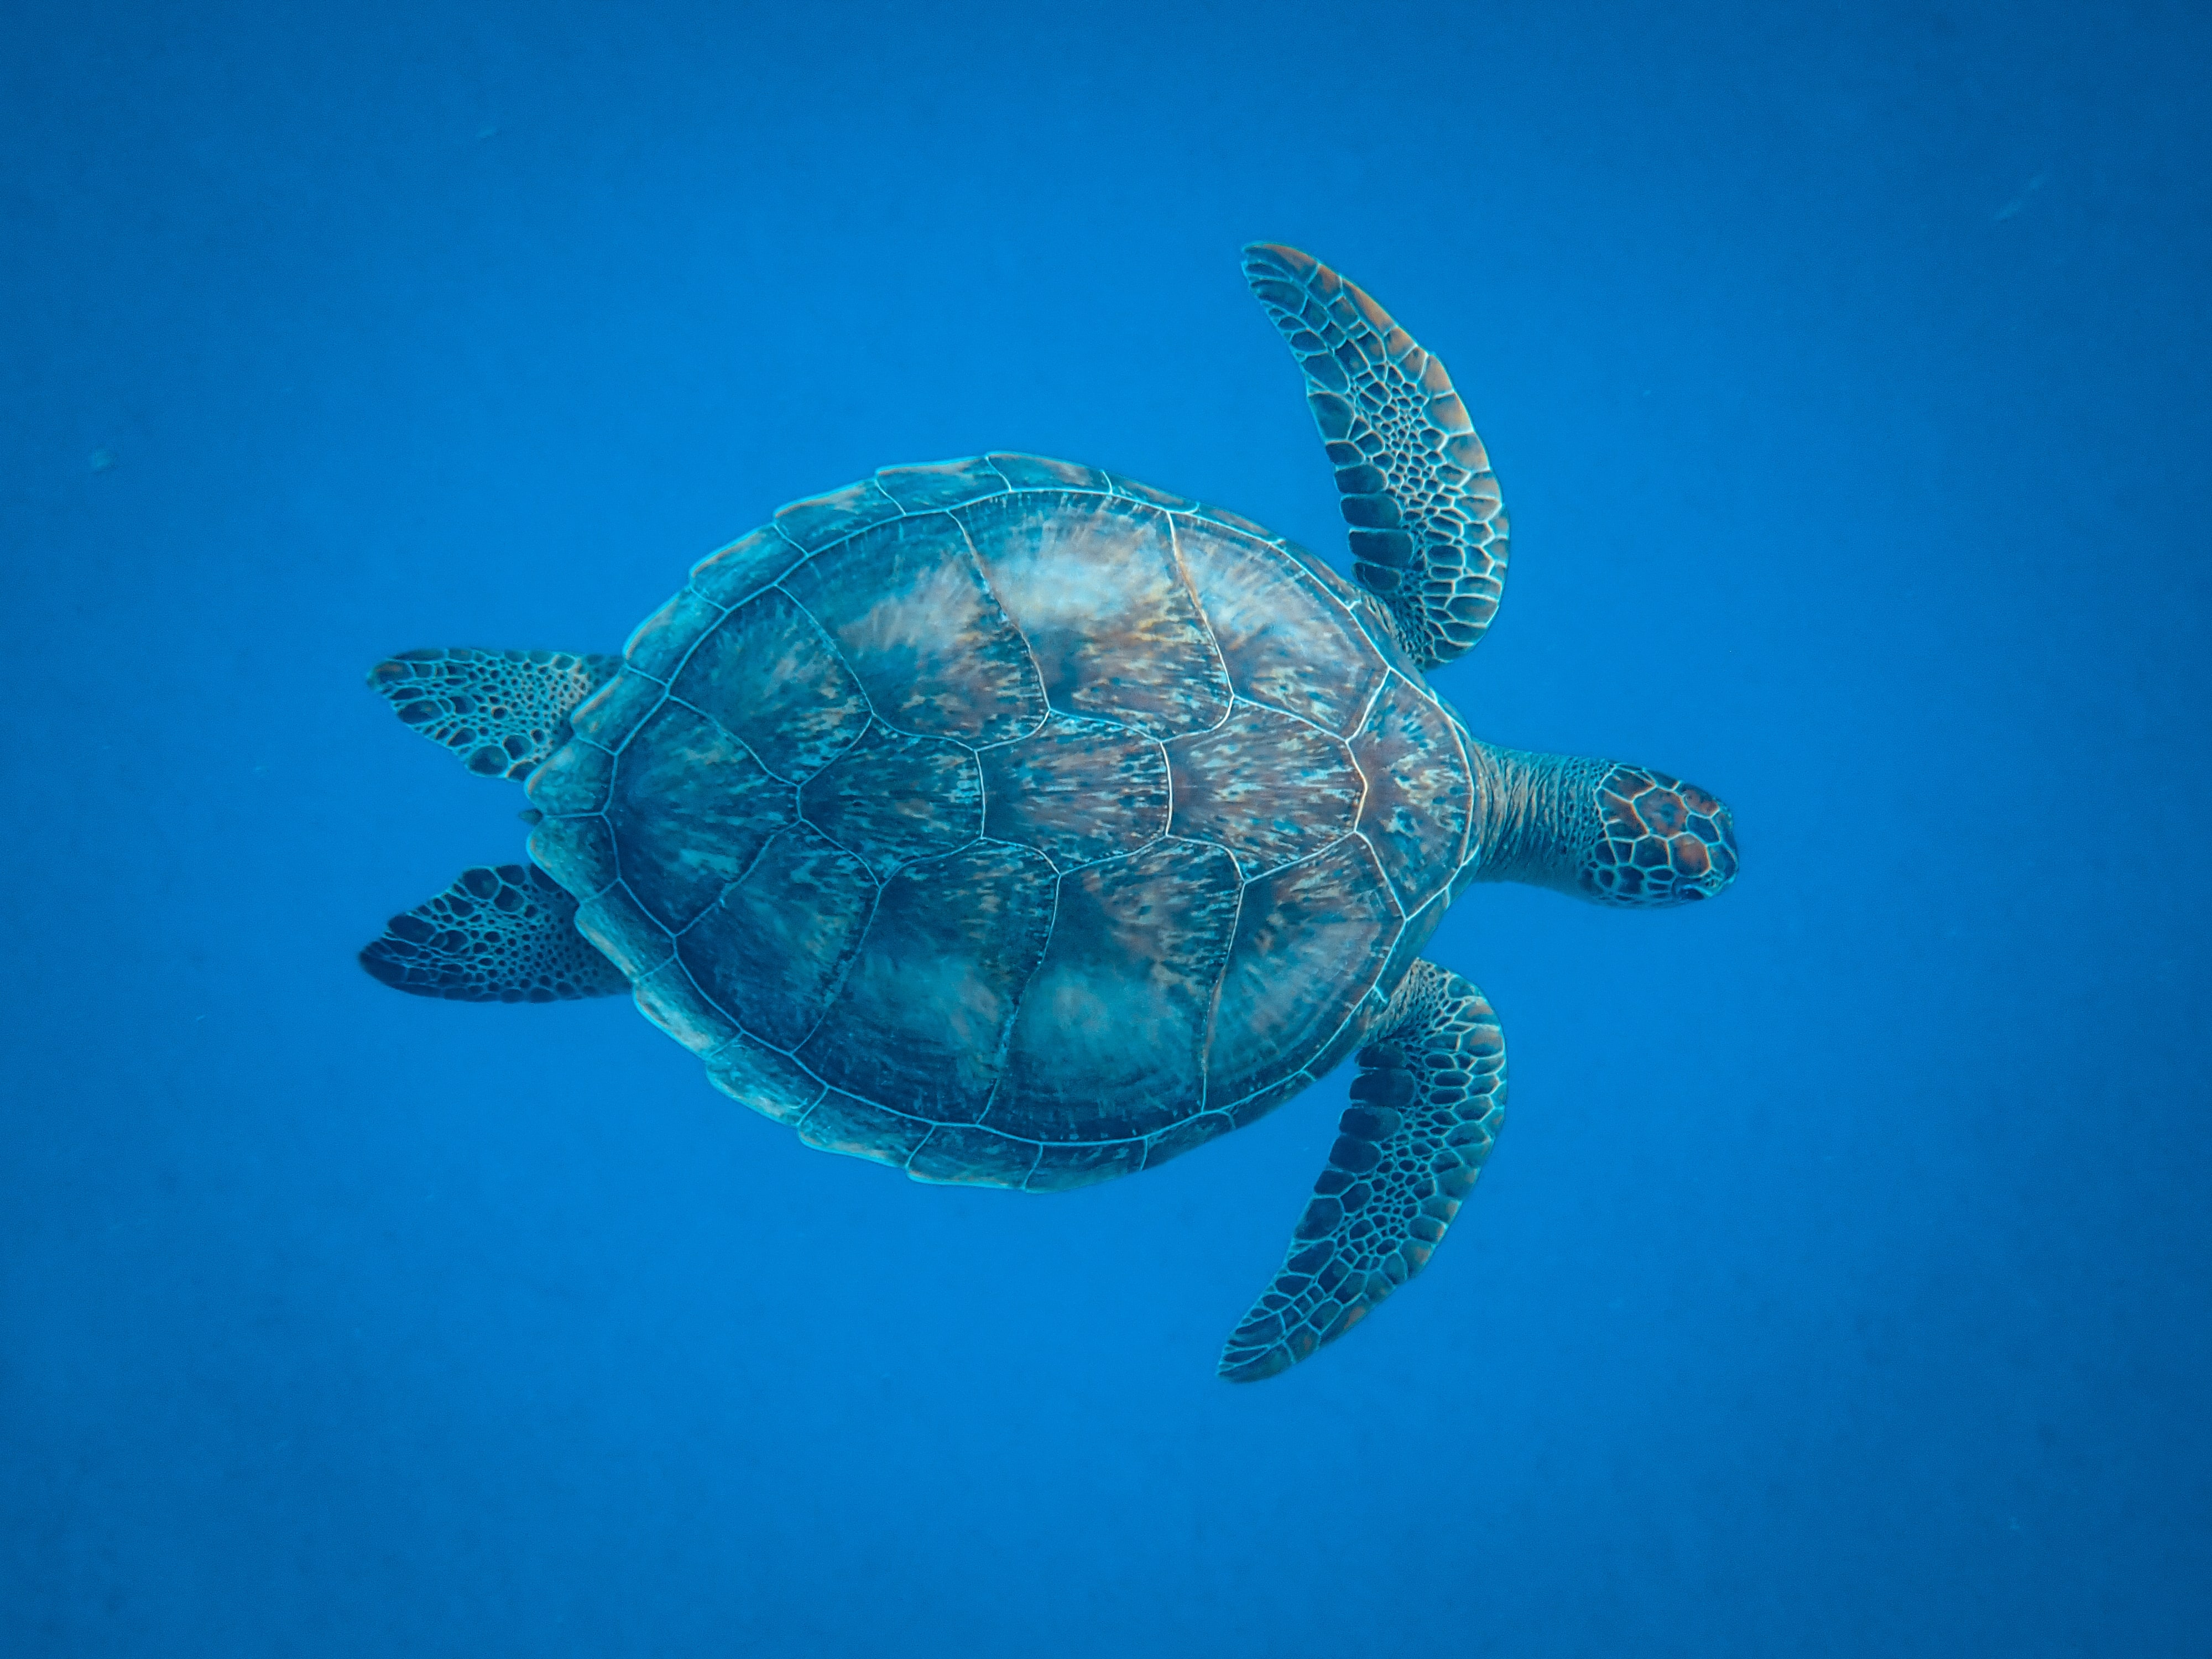 Picture of a turtle in the ocean.